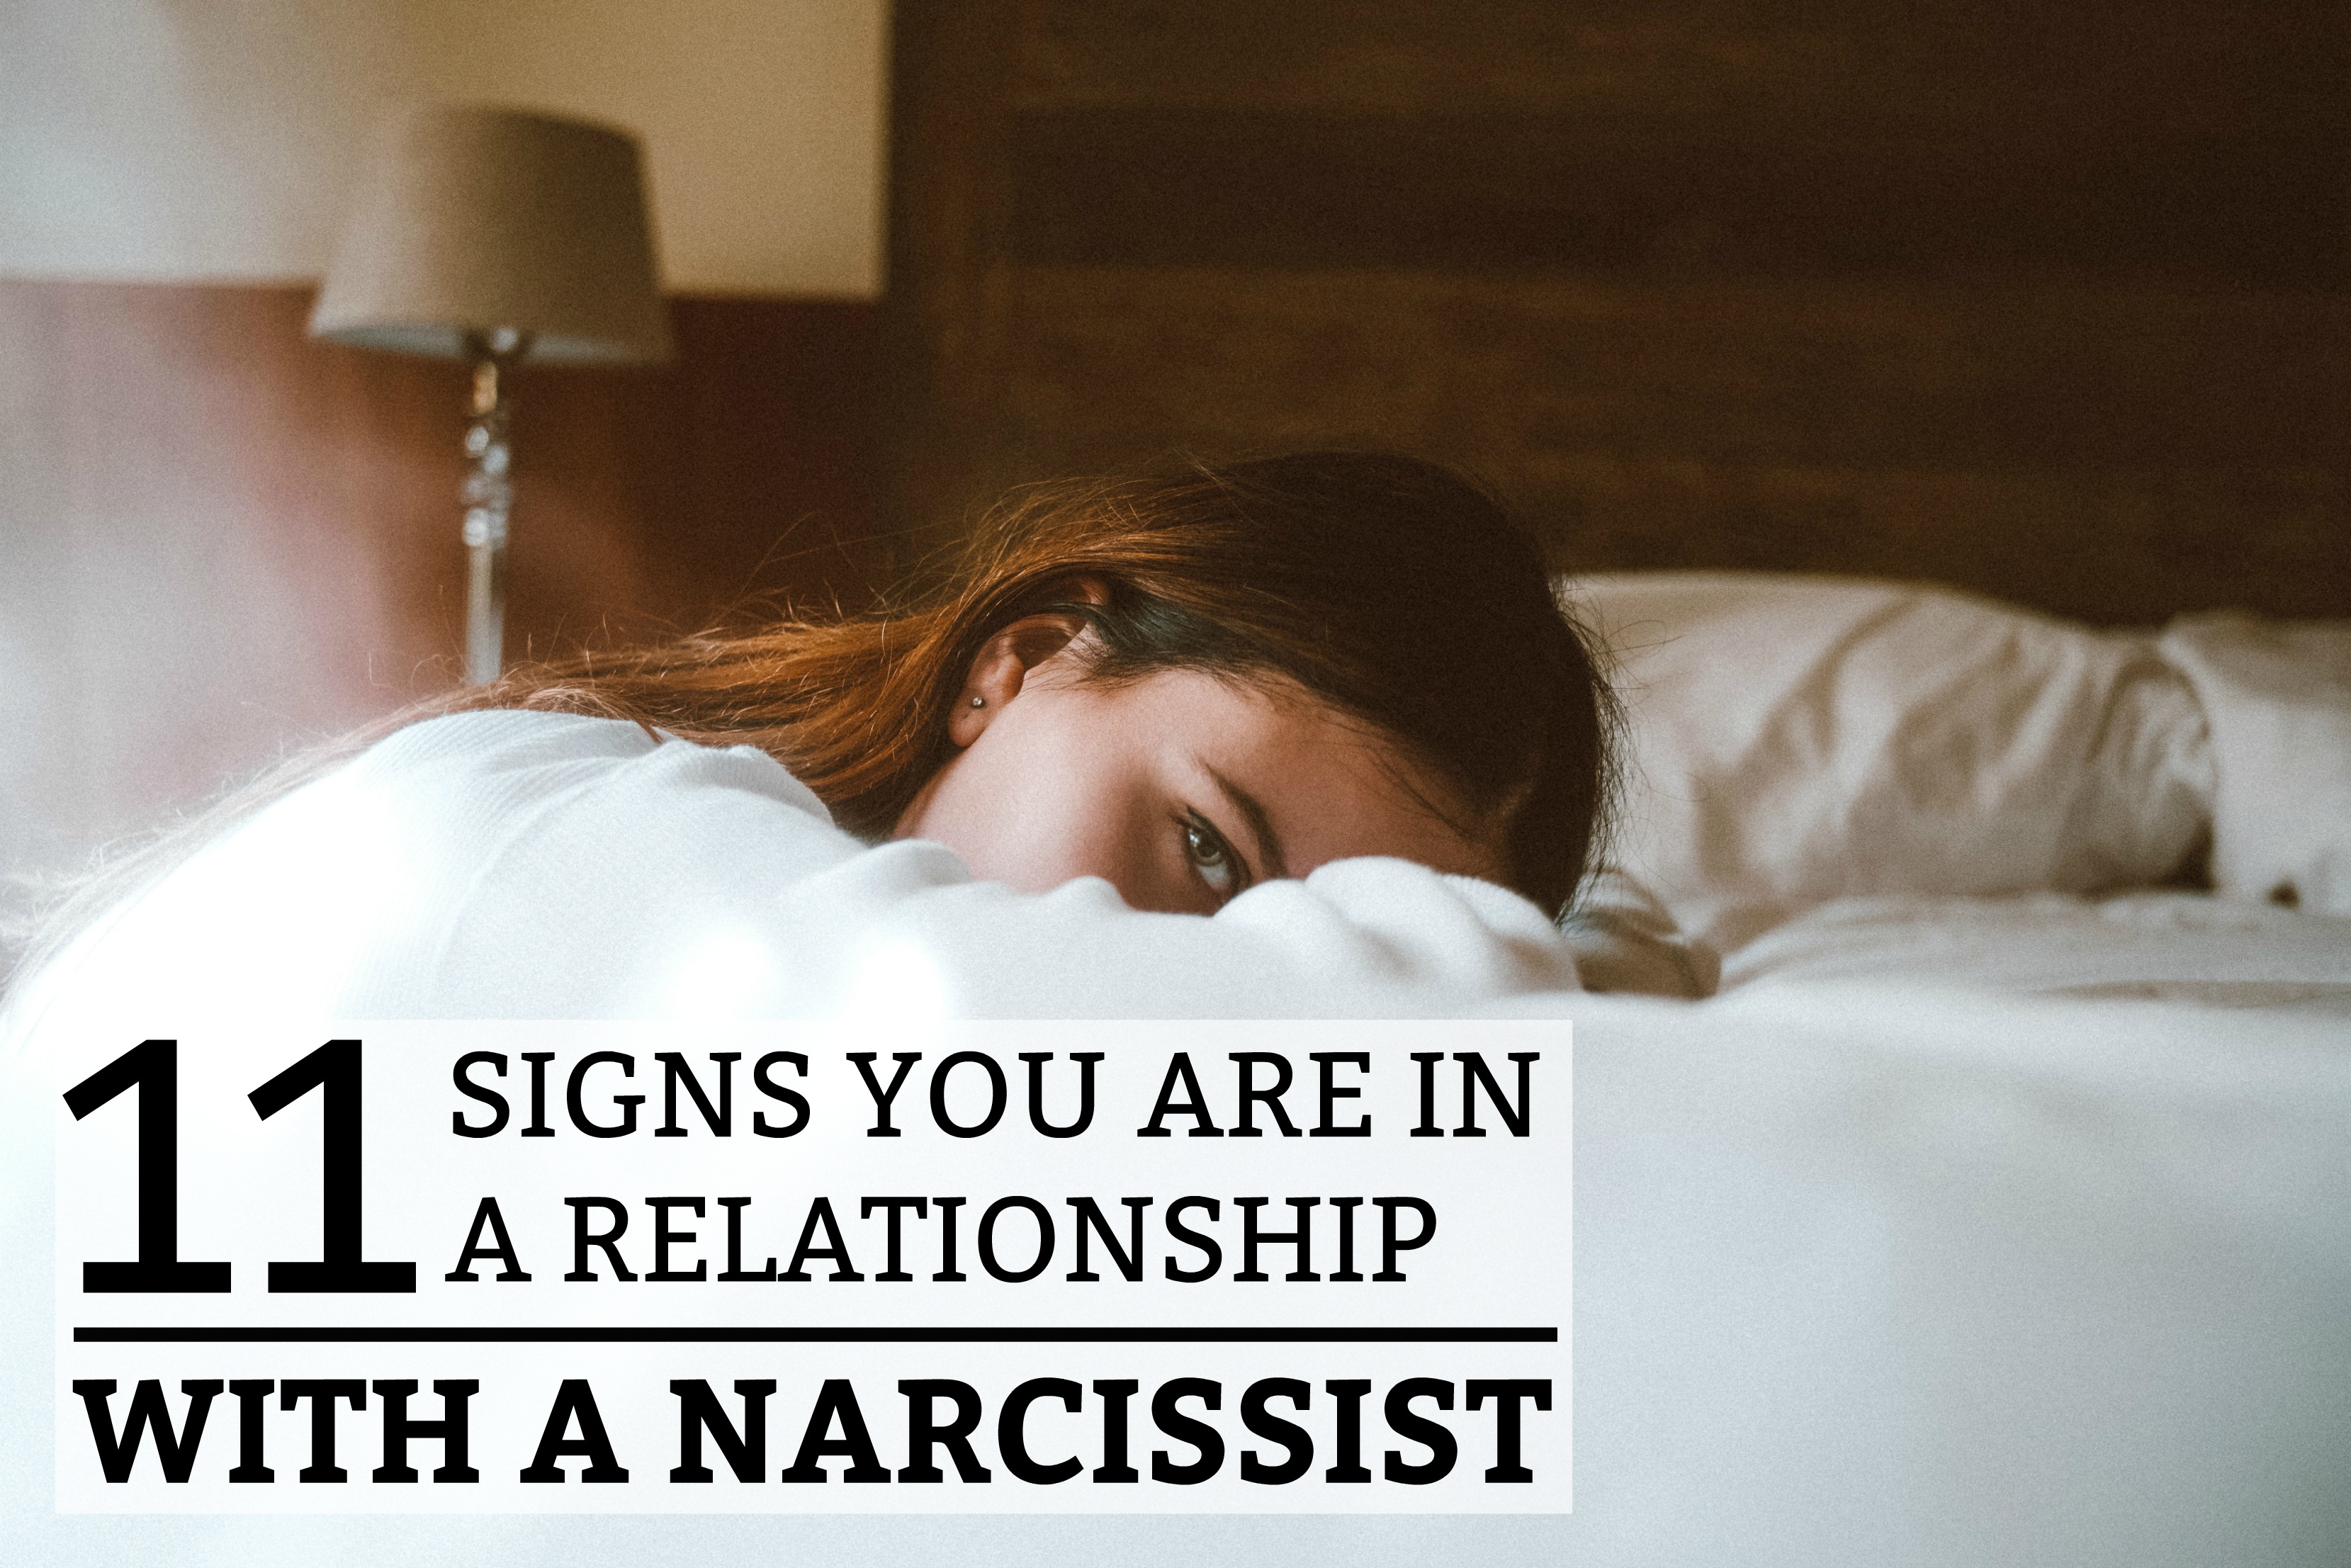 11 Signs You Are in a Relationship with a Narcissist